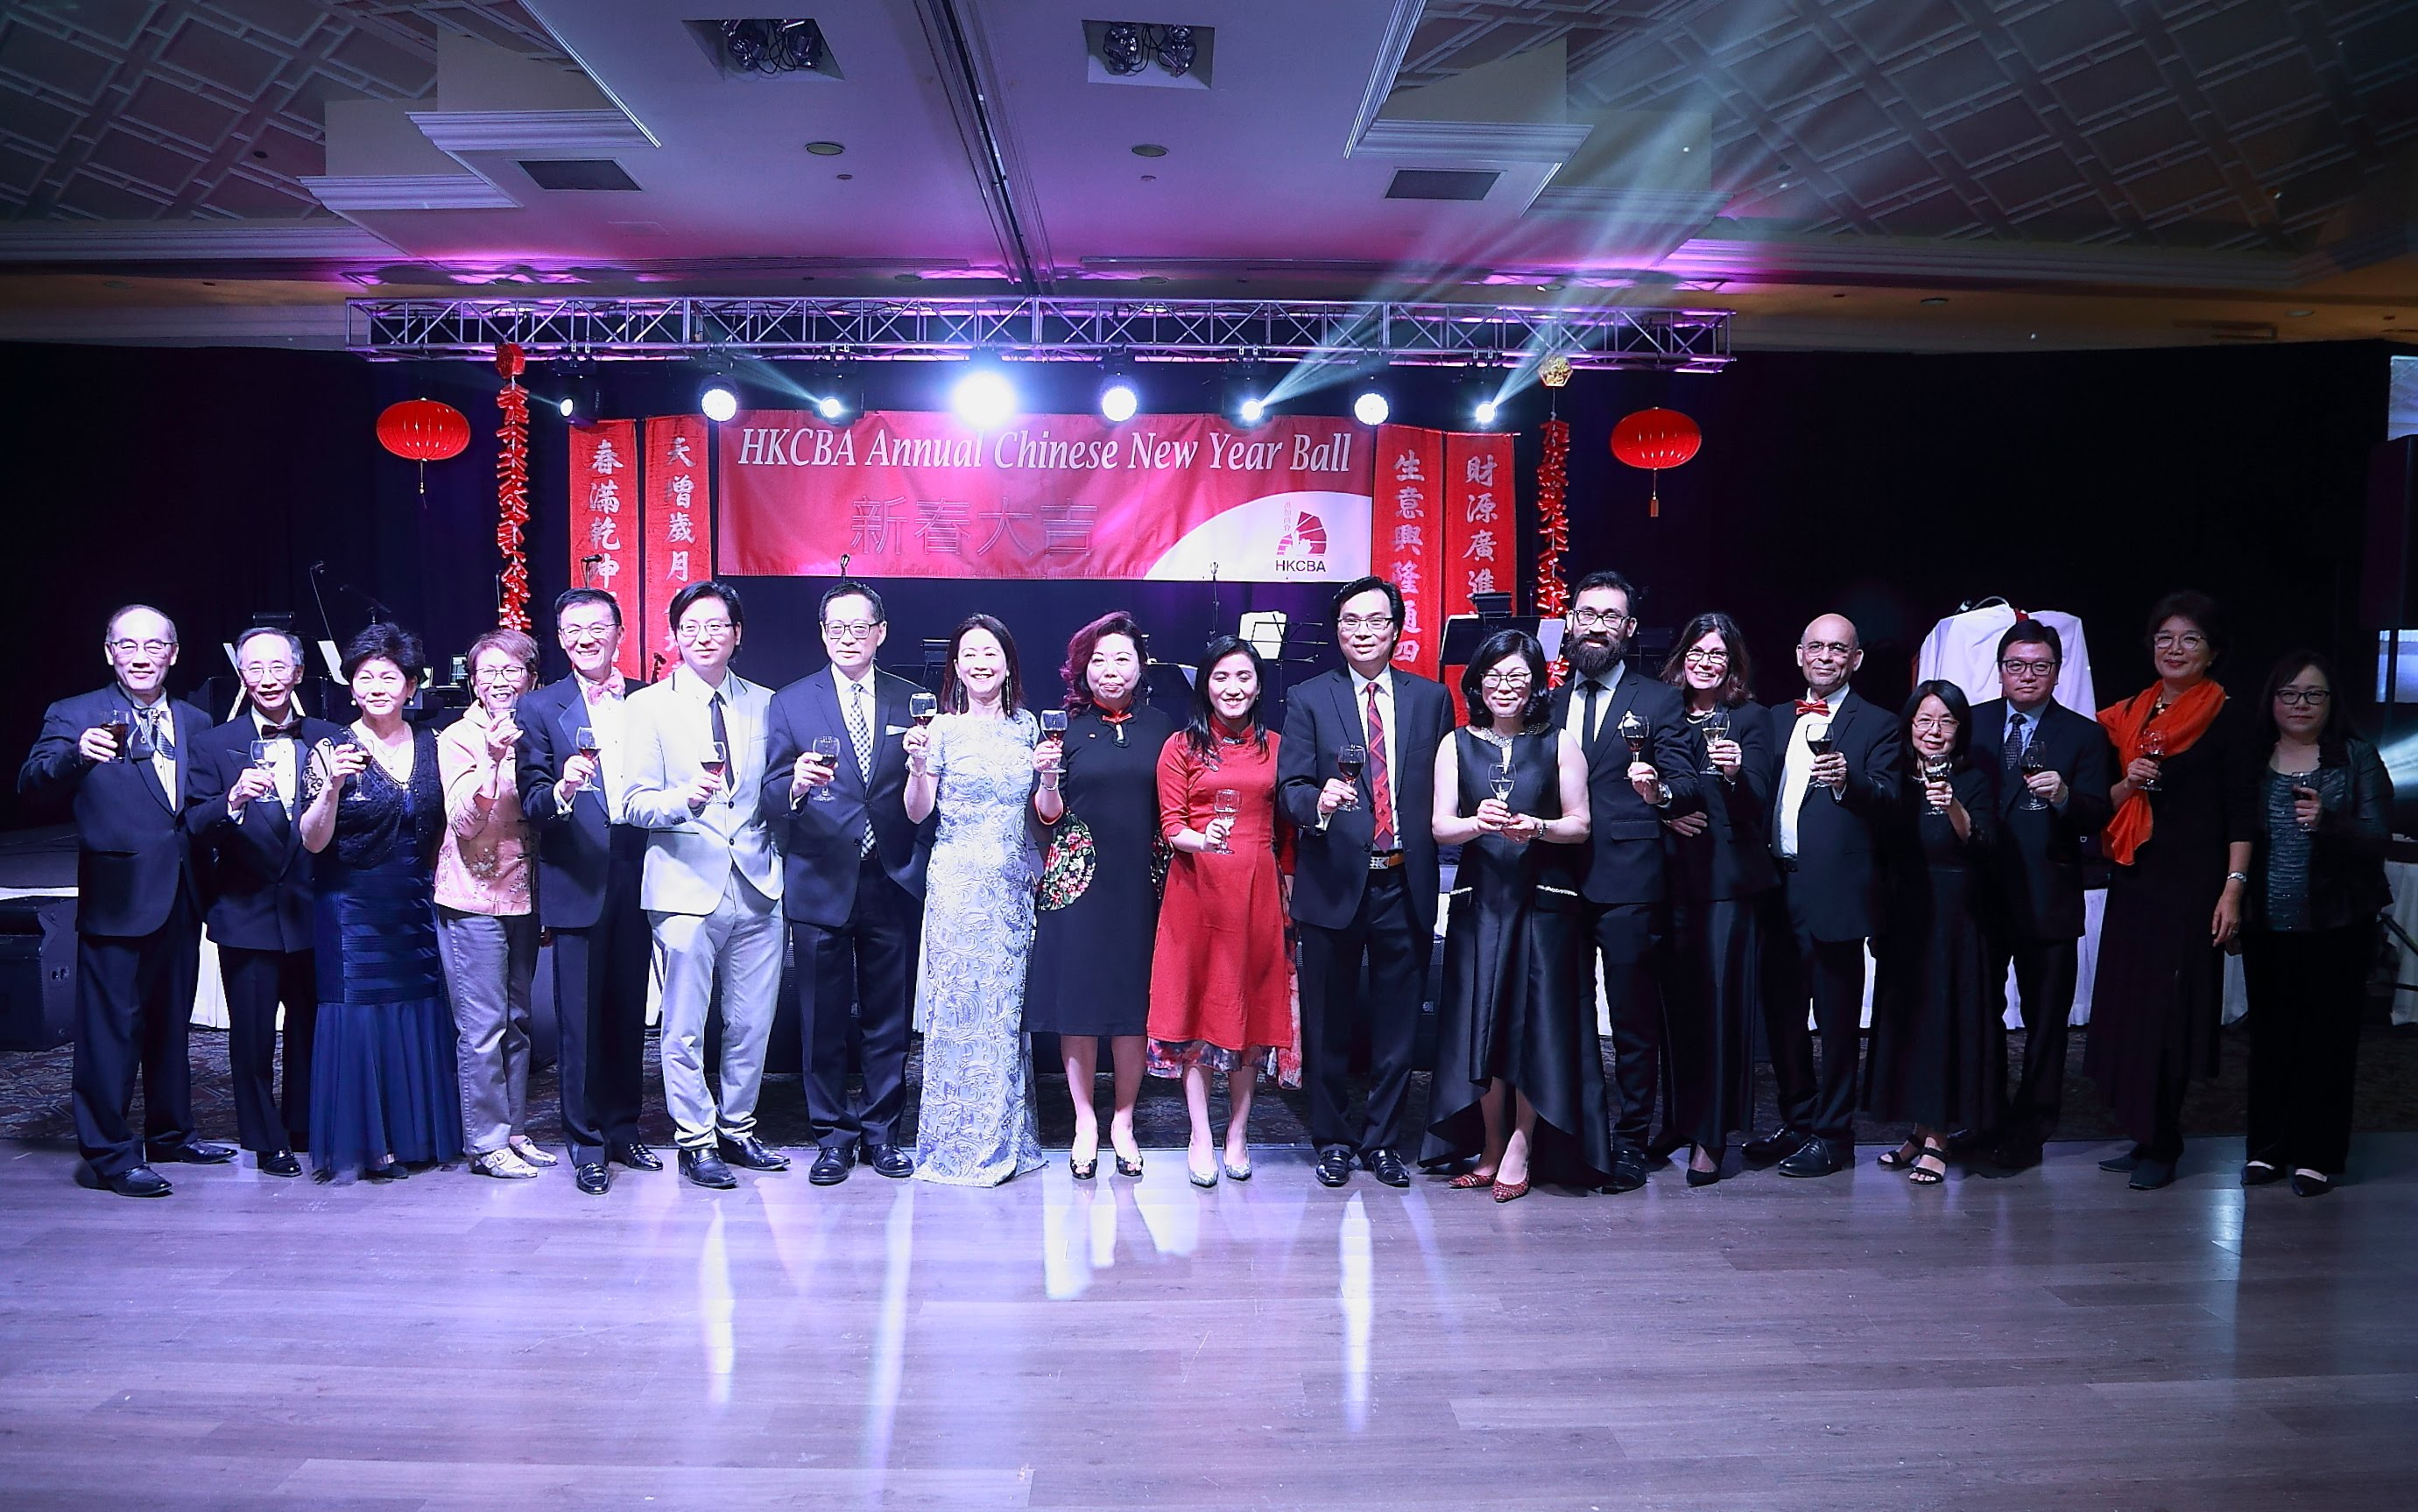 HCBA Annual Chinese New Year Ball Group Toast